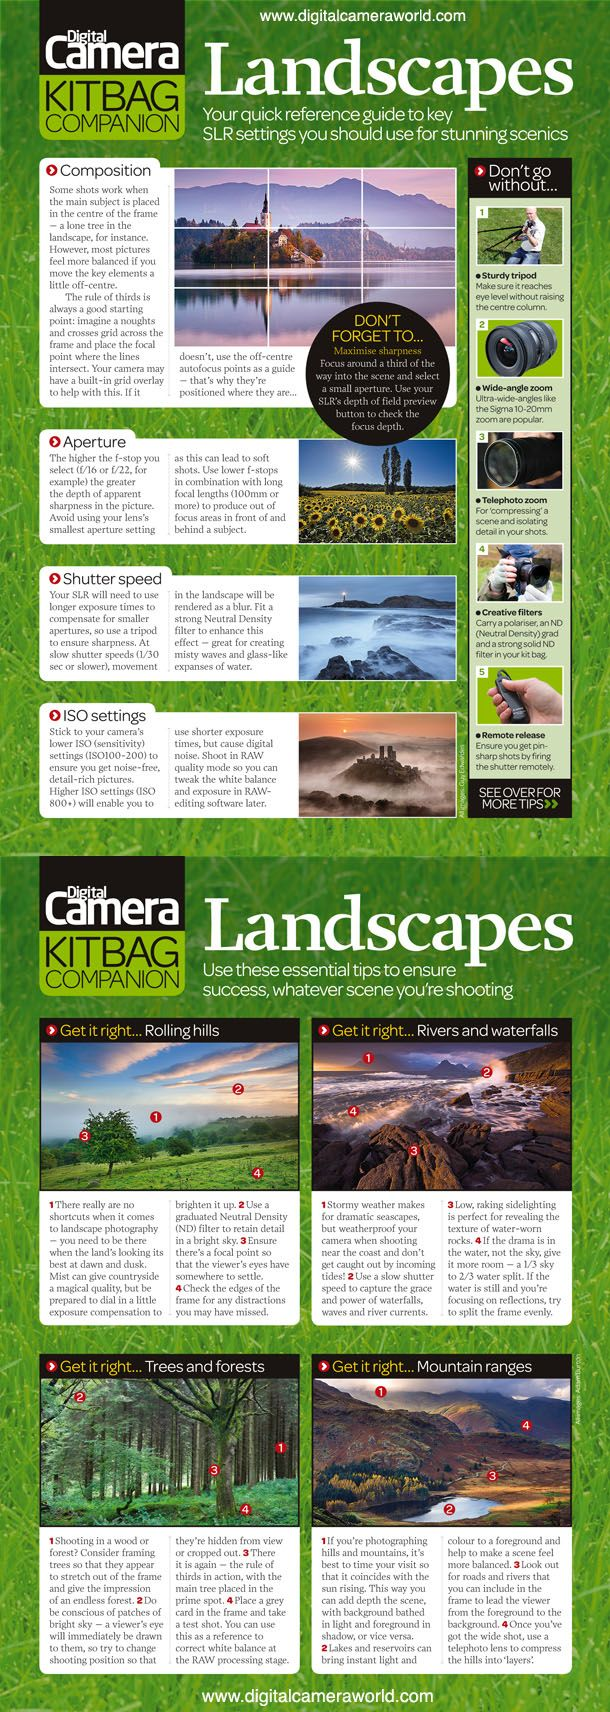 Landscape photography cheat sheet | digitalcameraworld.com